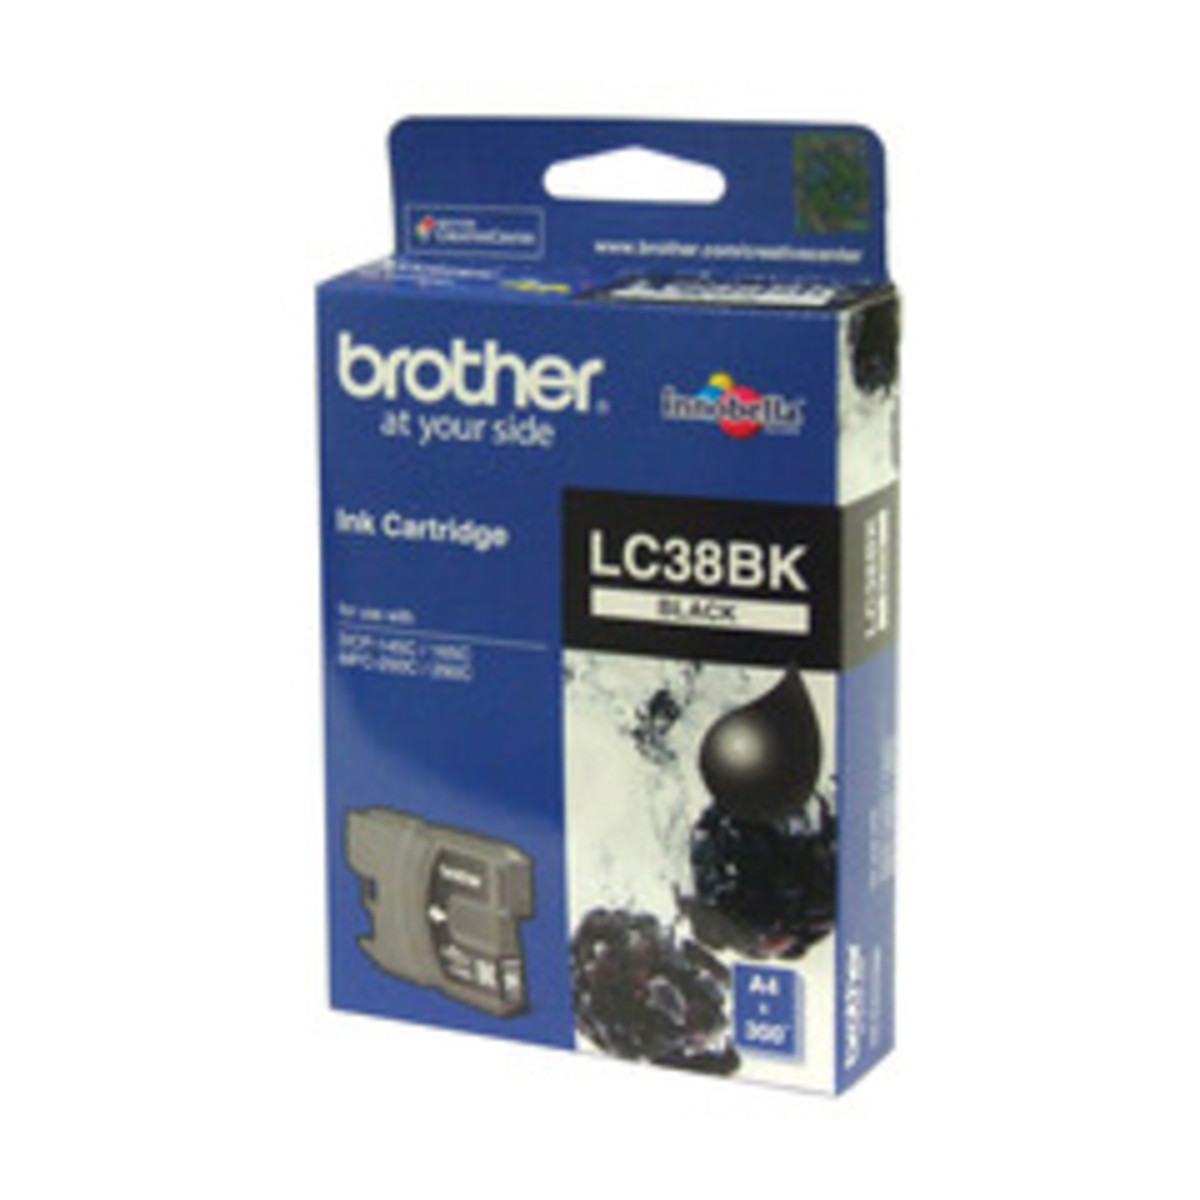 Brother LC-38BK Black Ink Cartridge